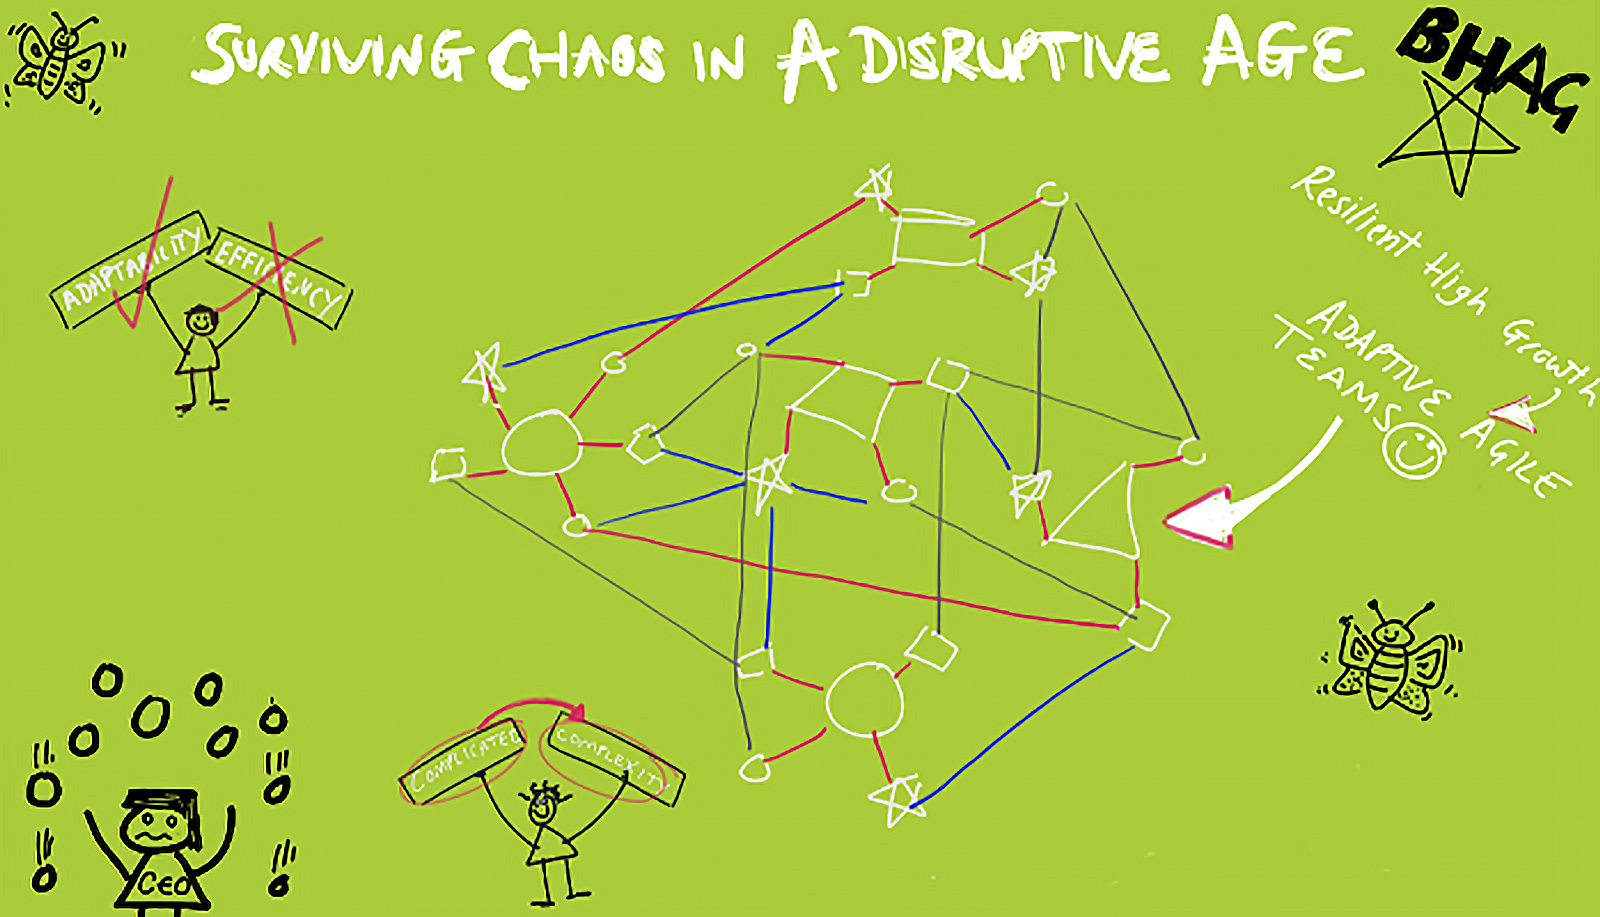 Five Things CEOs must do for Surviving Chaos in a Disruptive Age